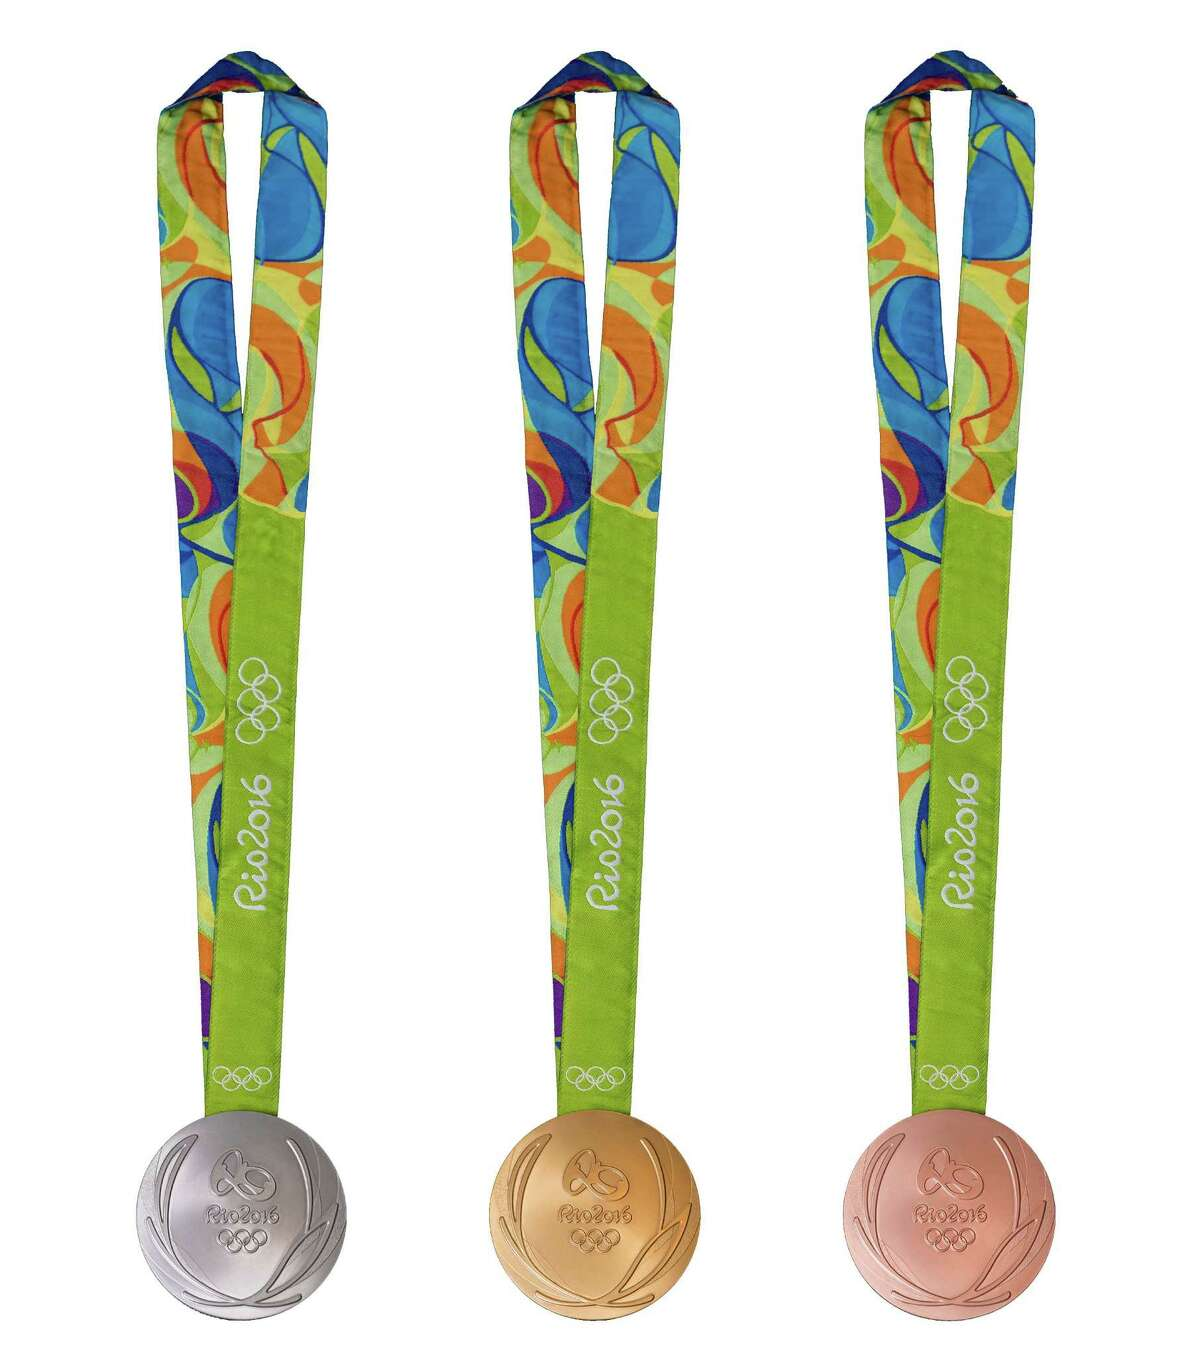 RIO DE JANEIRO, BRAZIL - JUNE 8: In this handout provided by Jogos Rio 2016, the front of the gold, silver and bronze medals for the 2016 Summer Olympics is shown June 8, 2016 in Rio de Janeiro, Brazil. (Photo by Alex Ferro/Jogos Rio 2016 via Getty Images)